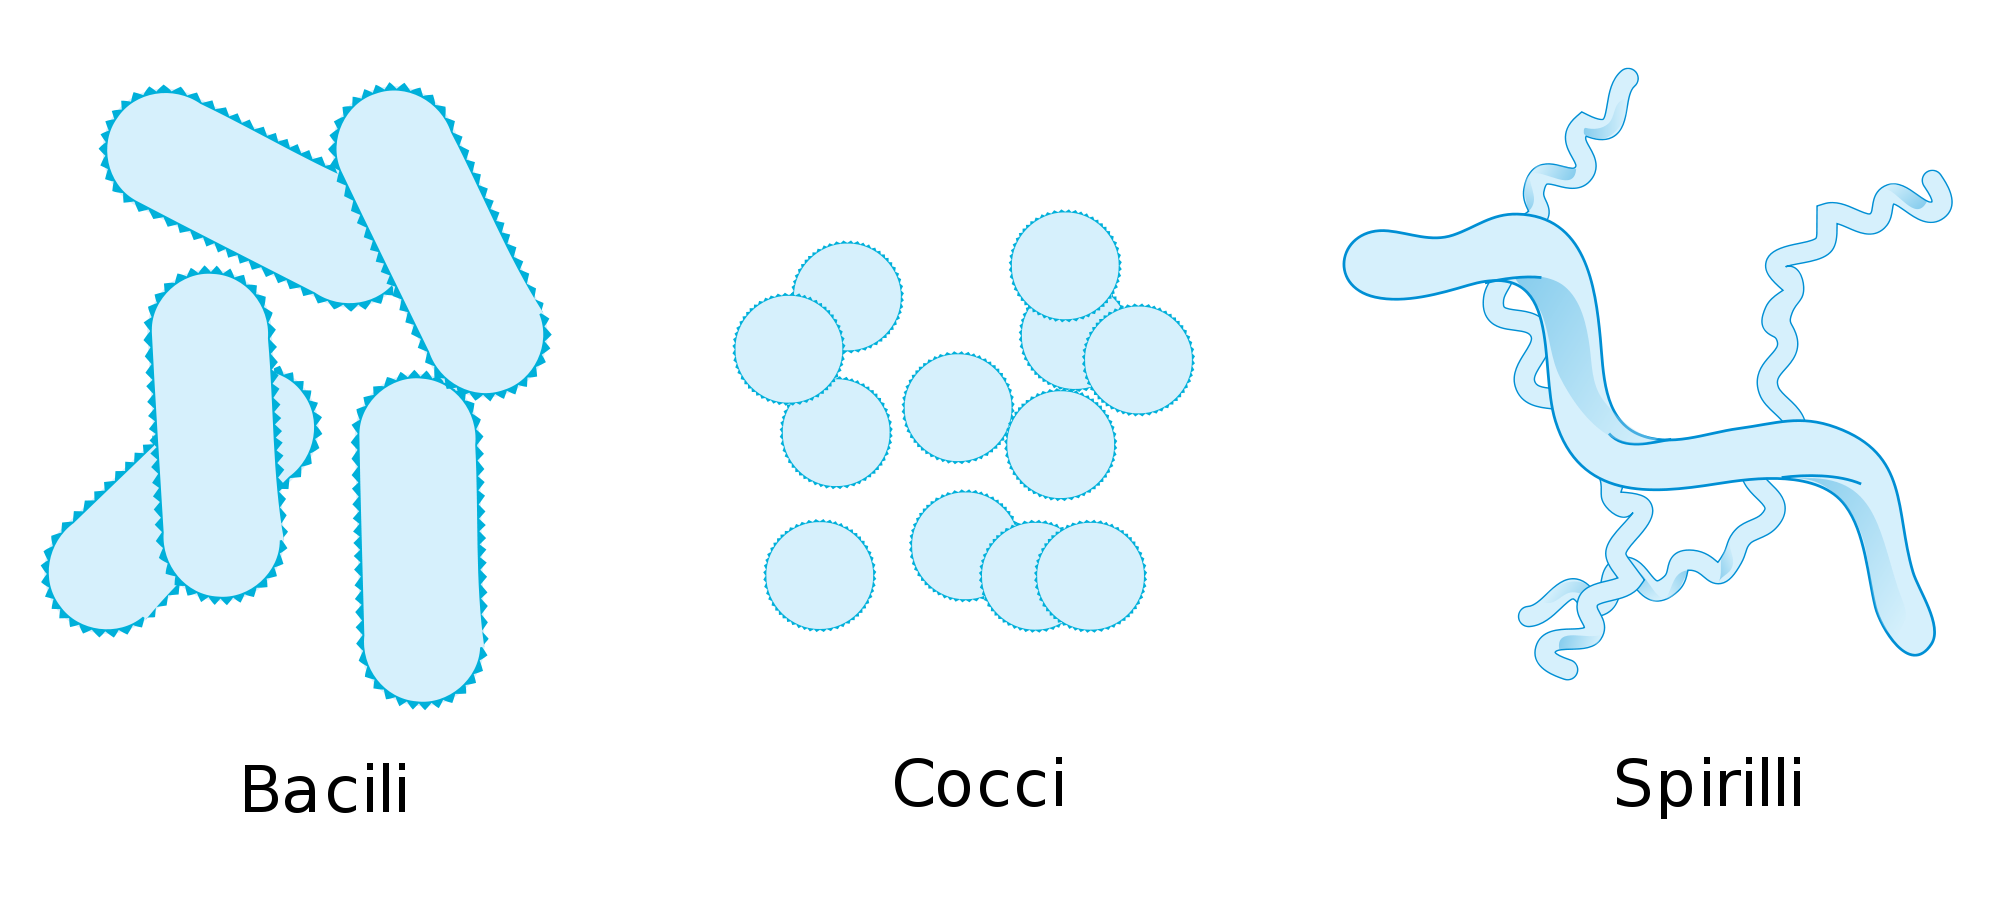 Germ clipart pathogen. Bacteria drawing at getdrawings